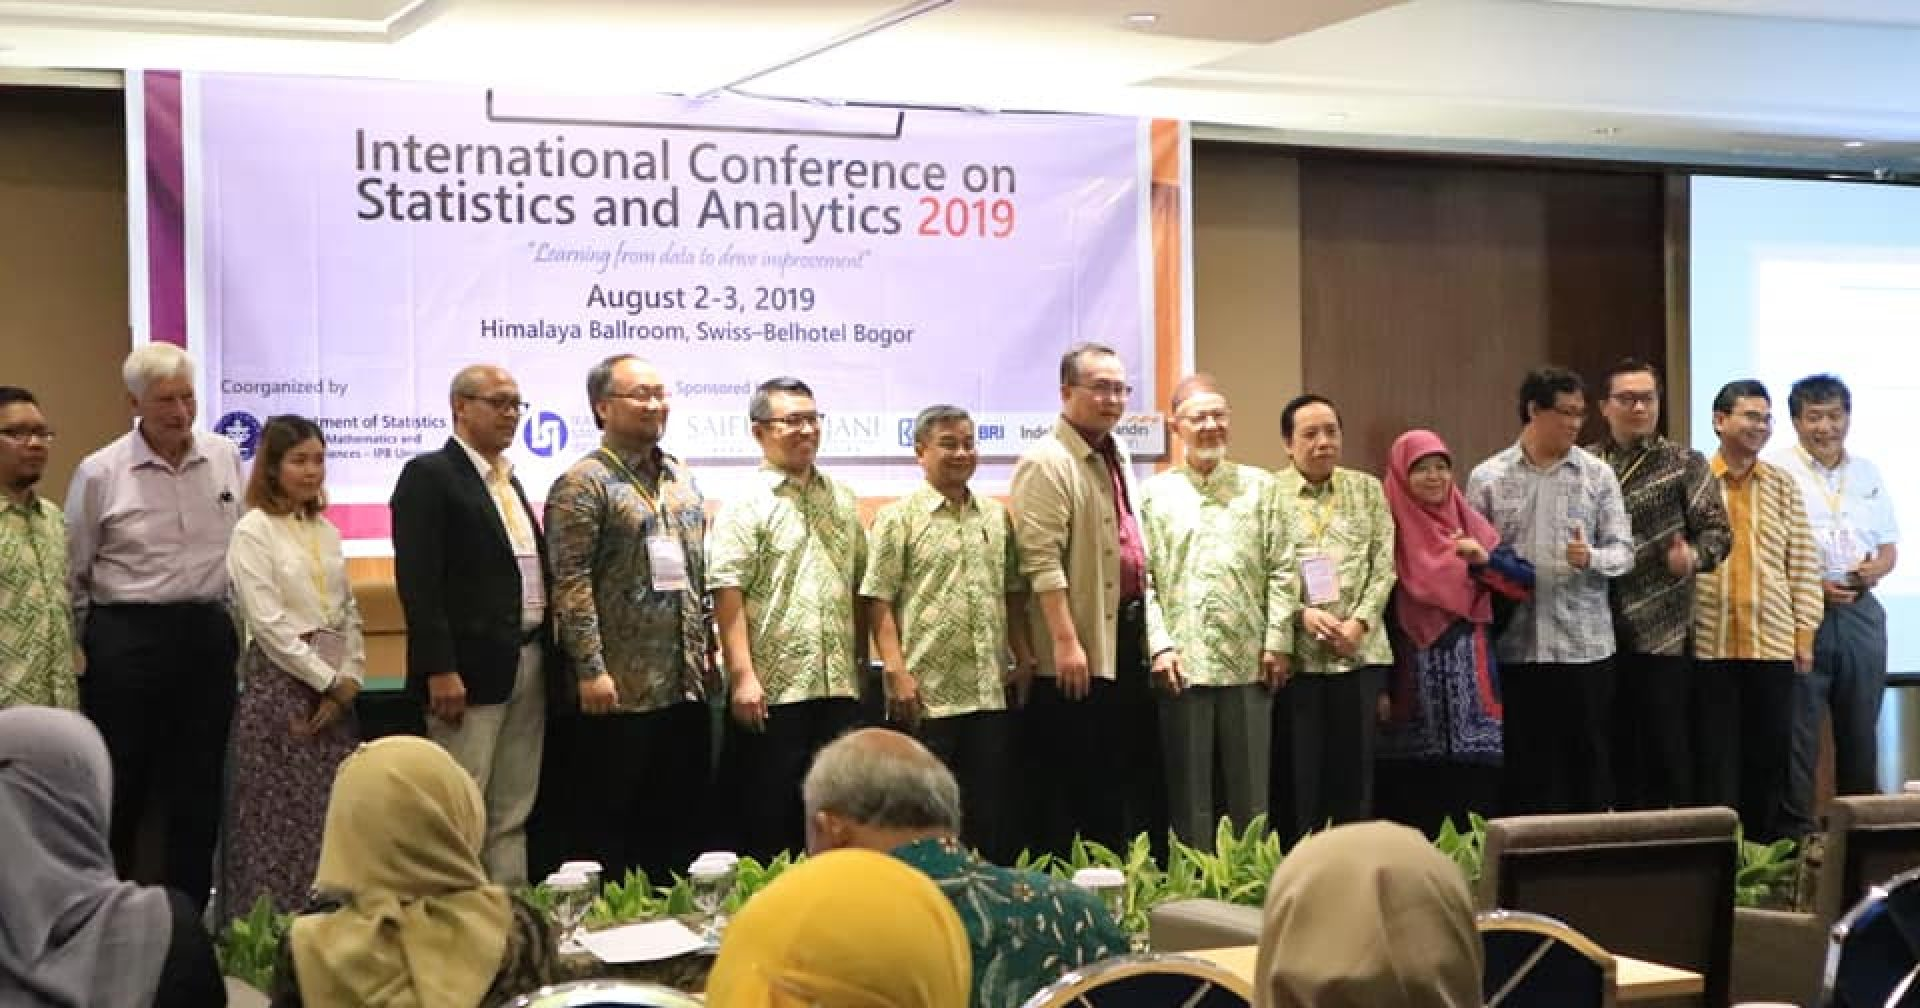 International Conference on Mathematics, Statistics, and Data Science